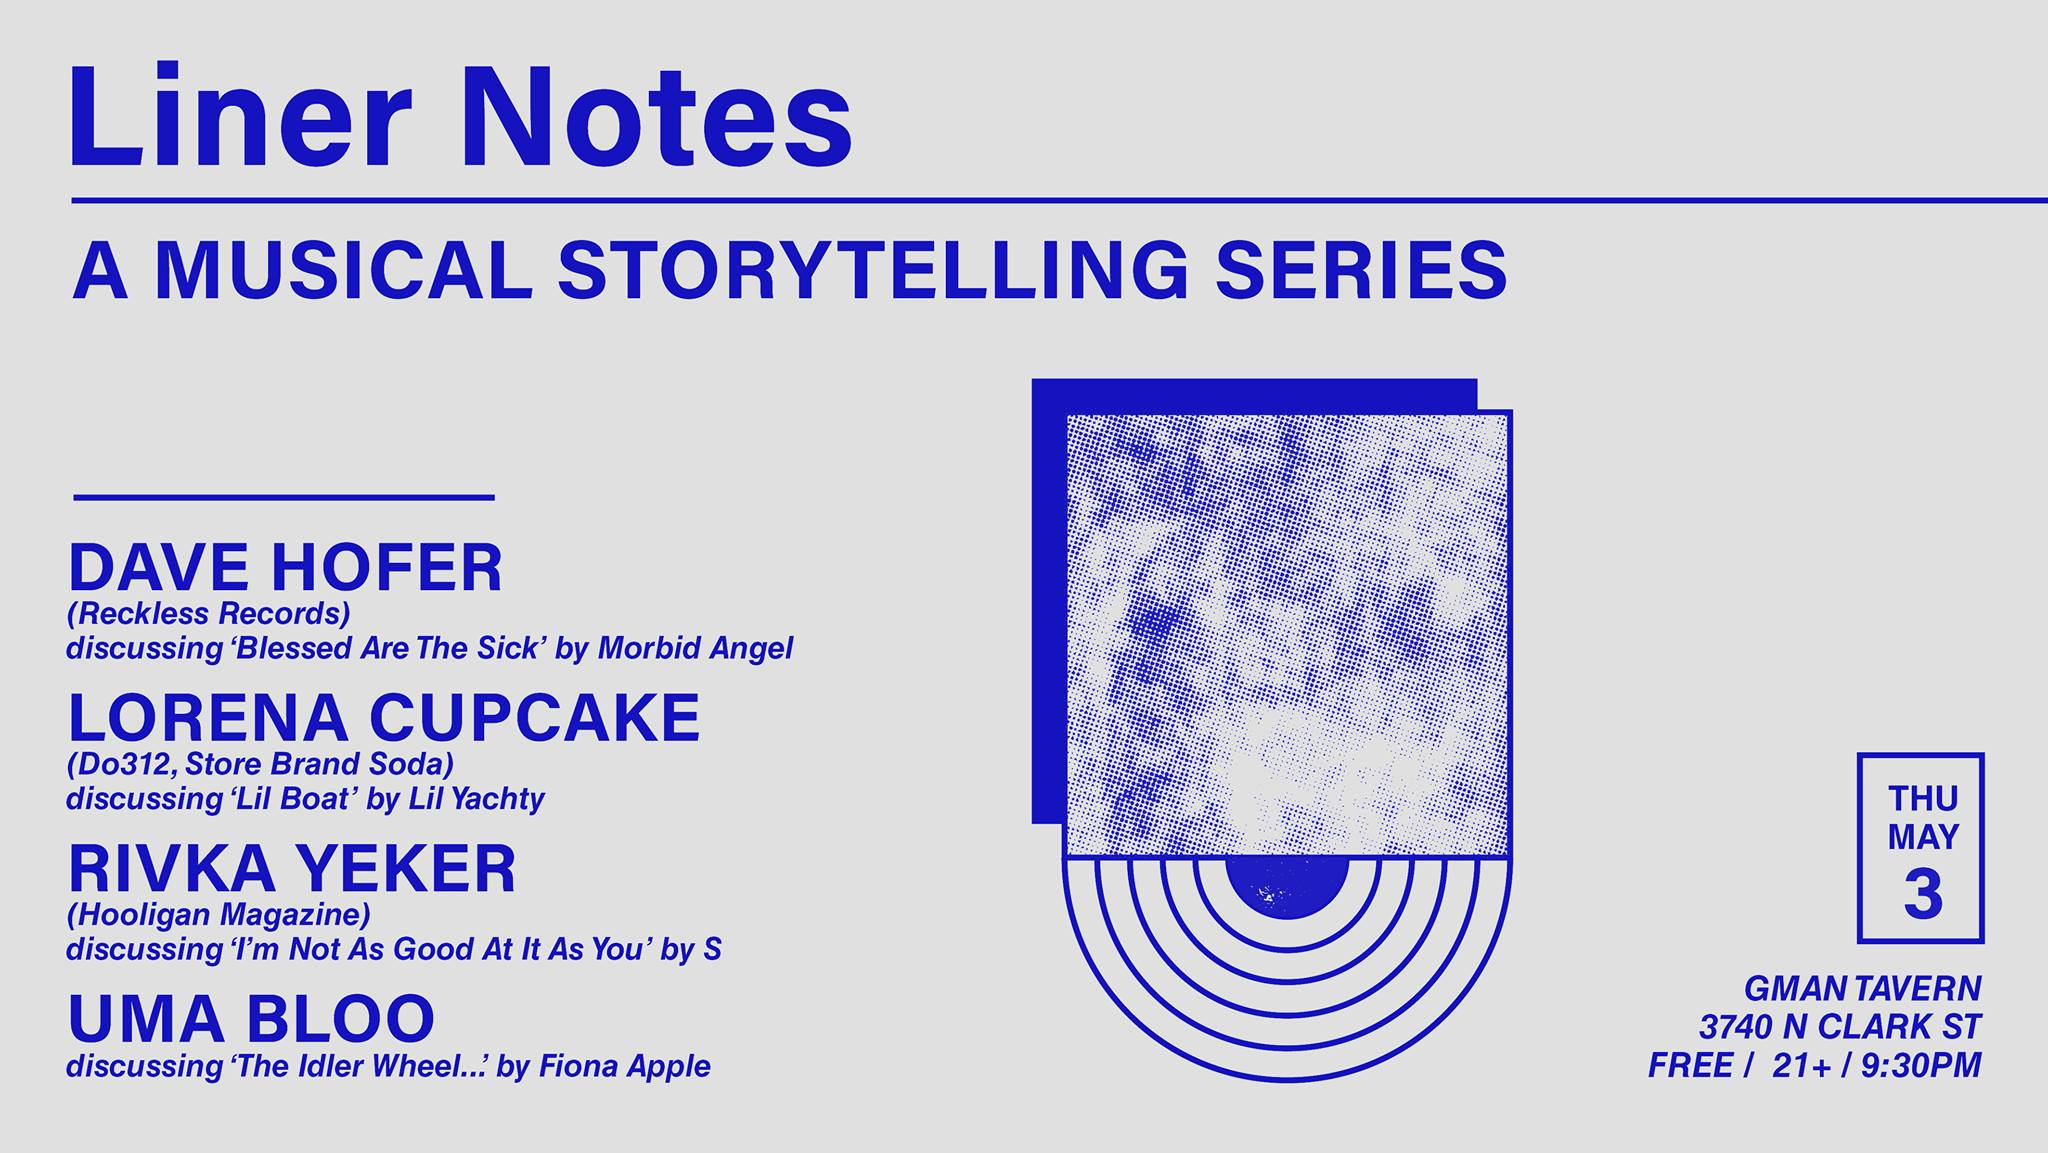 GMan Tavern Announce Monthly Event Series, Liner Notes, Storytelling About Influential Albums